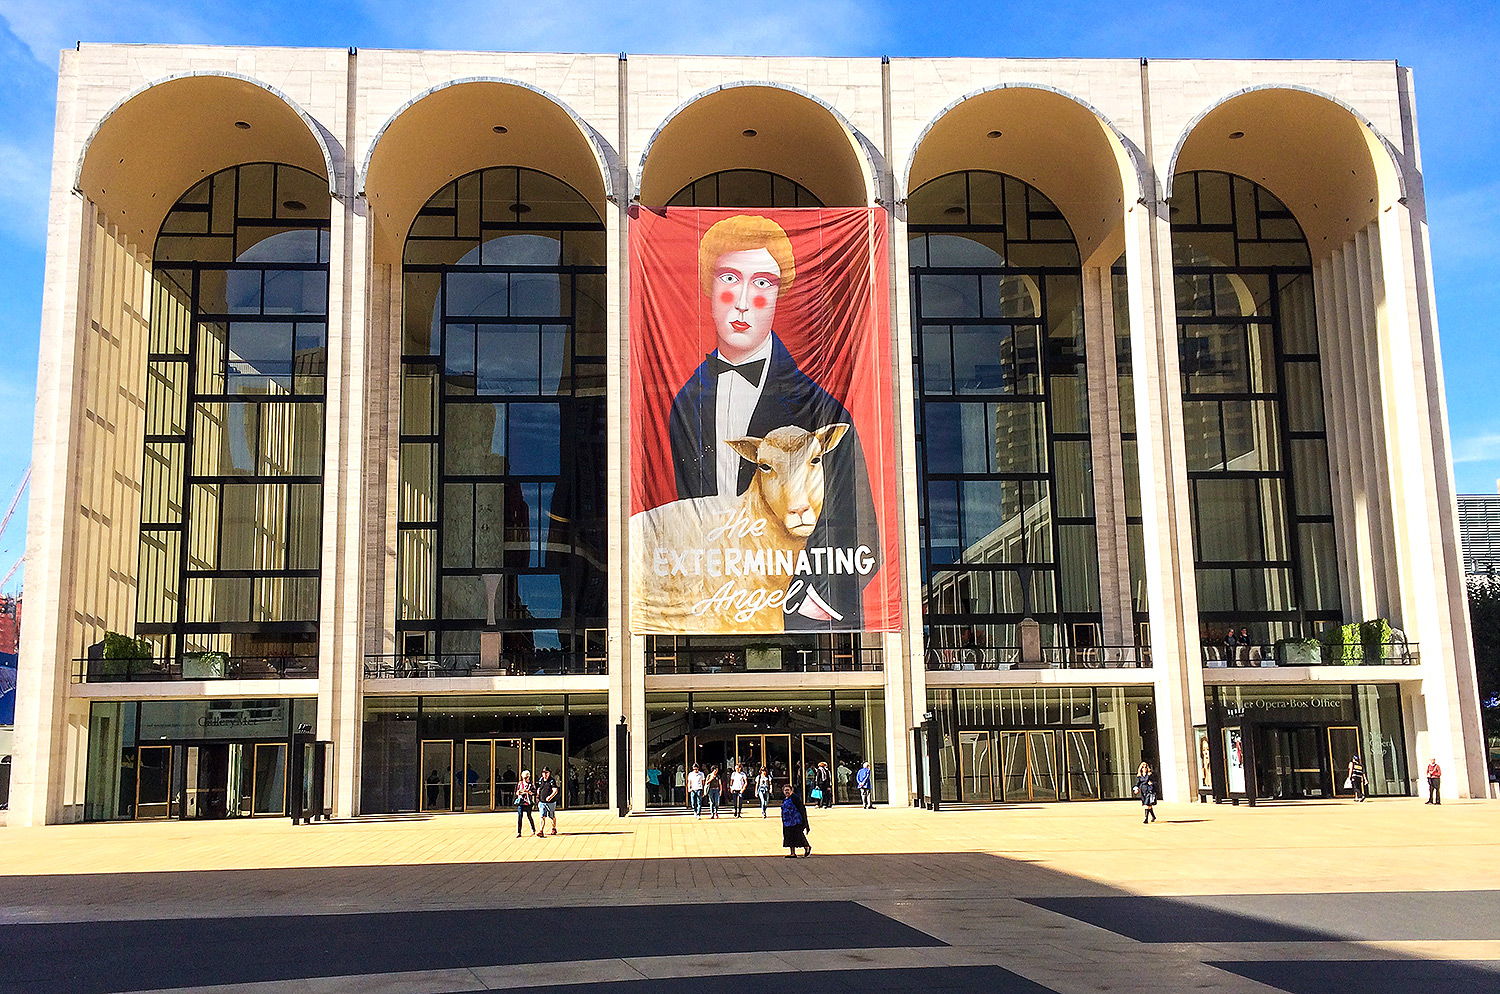 Metropolitan Opera House from Lincoln Center Plaza